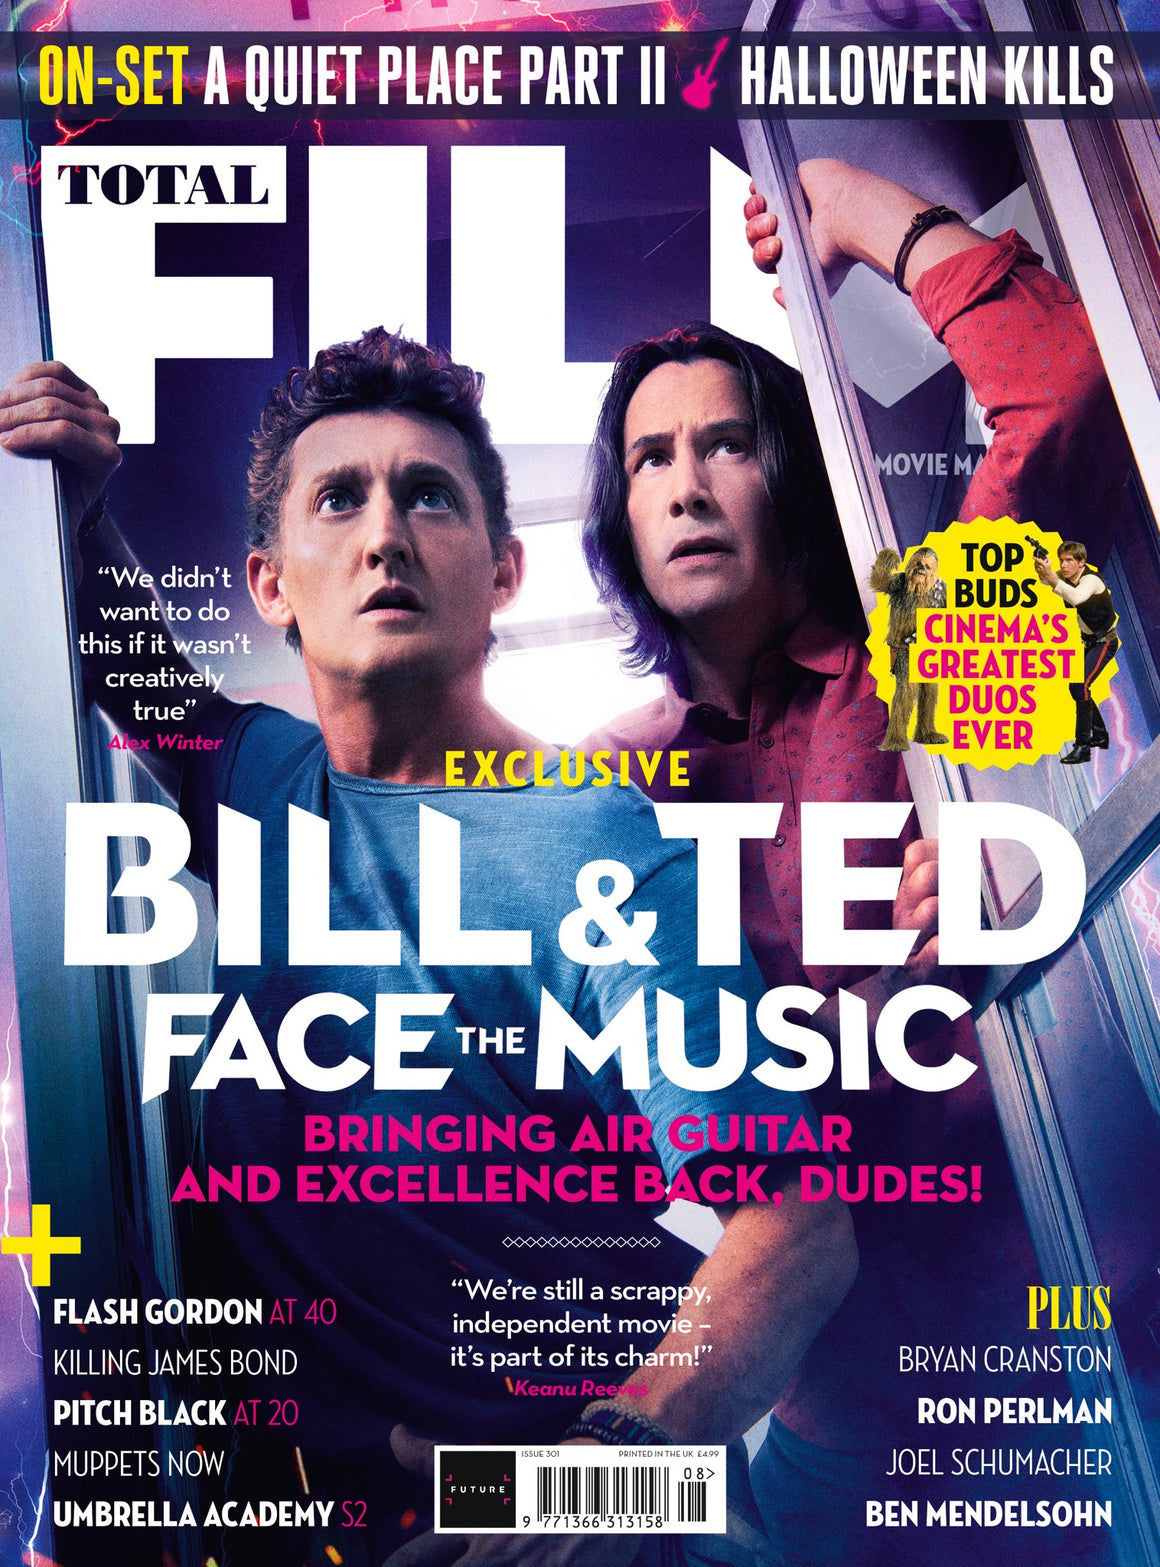 Total Film Magazine August 2020: KEANU REEVES BILL & TED FACE THE MUSIC COVER